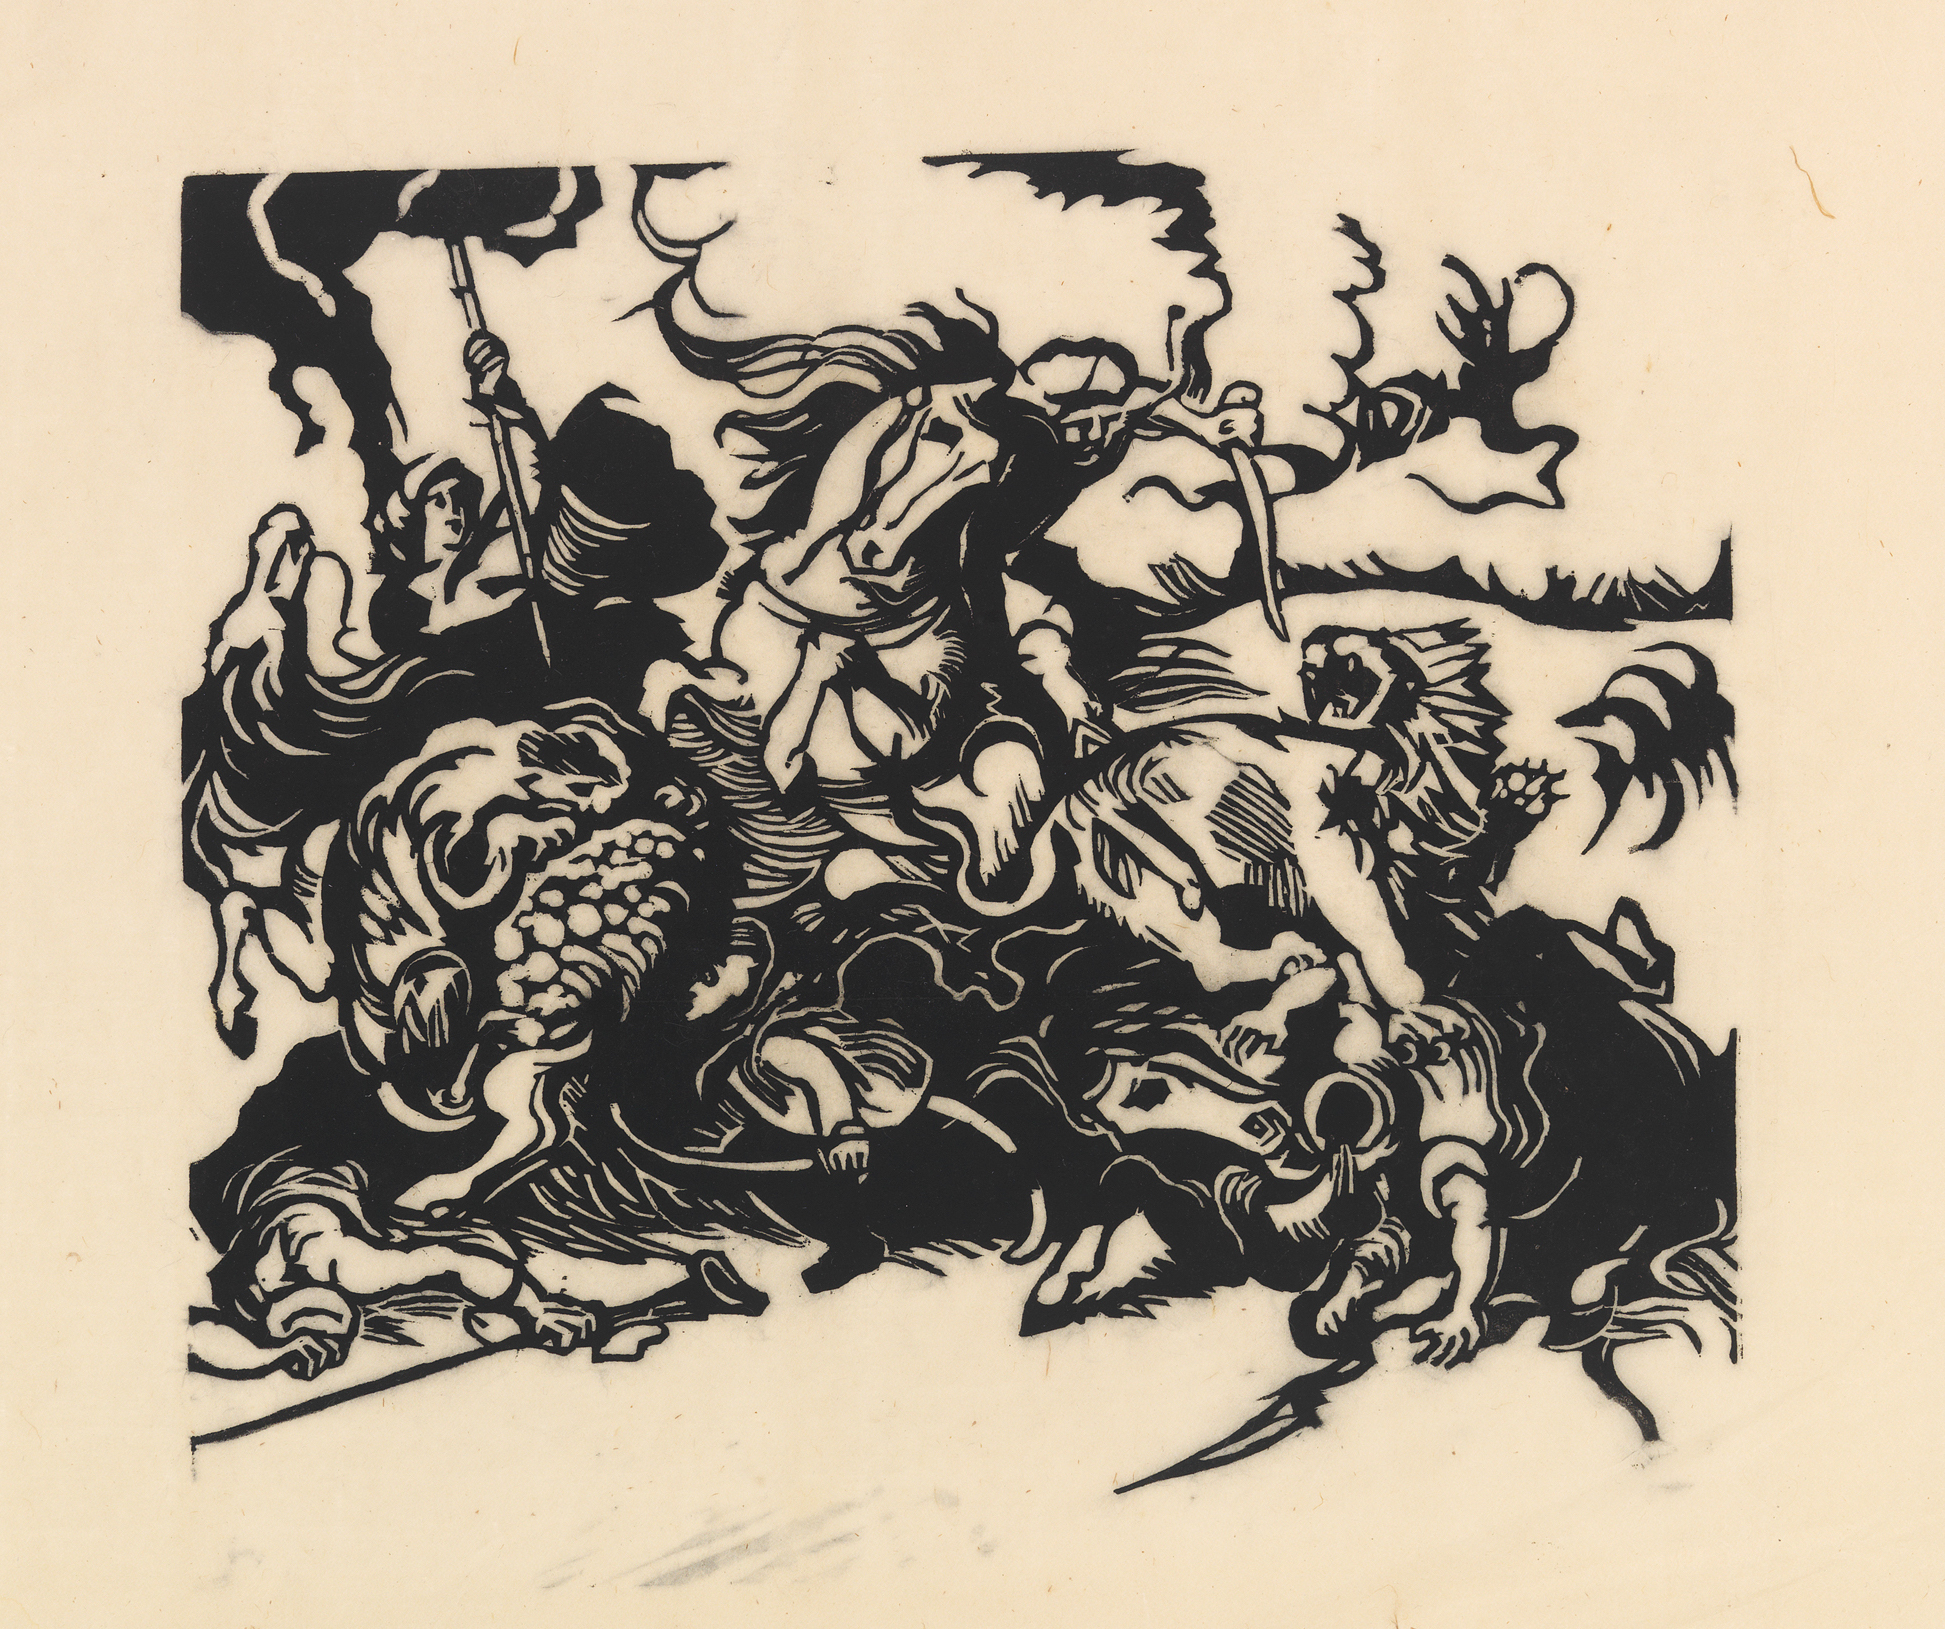 Franz MarcGerman, Lion Hunt after Delacroix (Löwenjagd nach Delacroix)